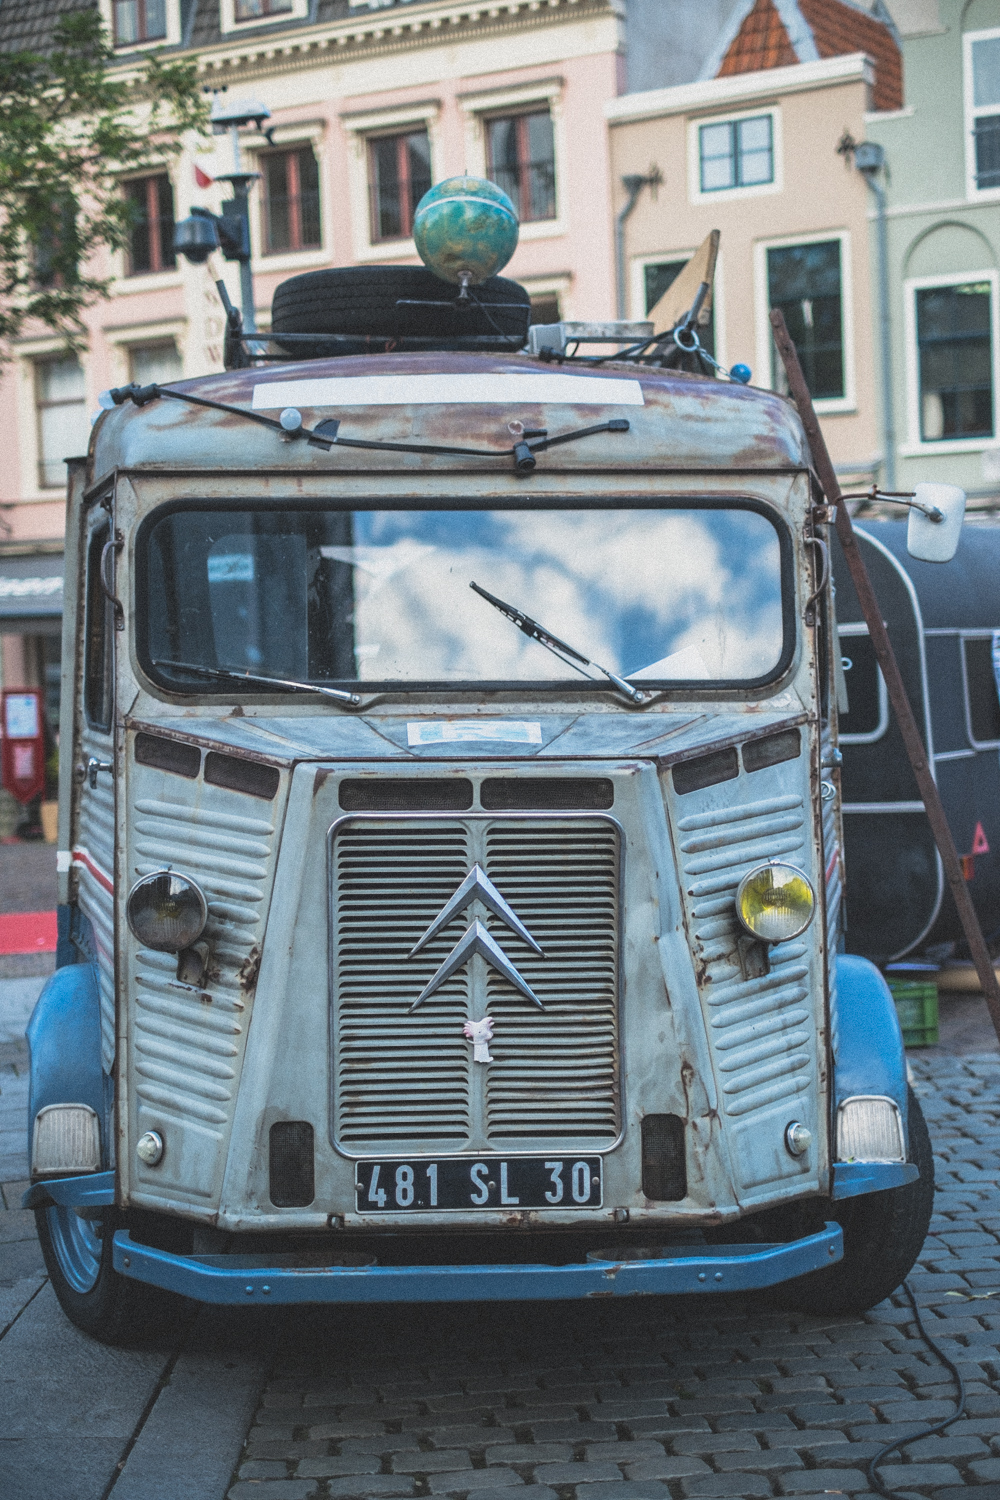 Citroen H Van in downtown plaza